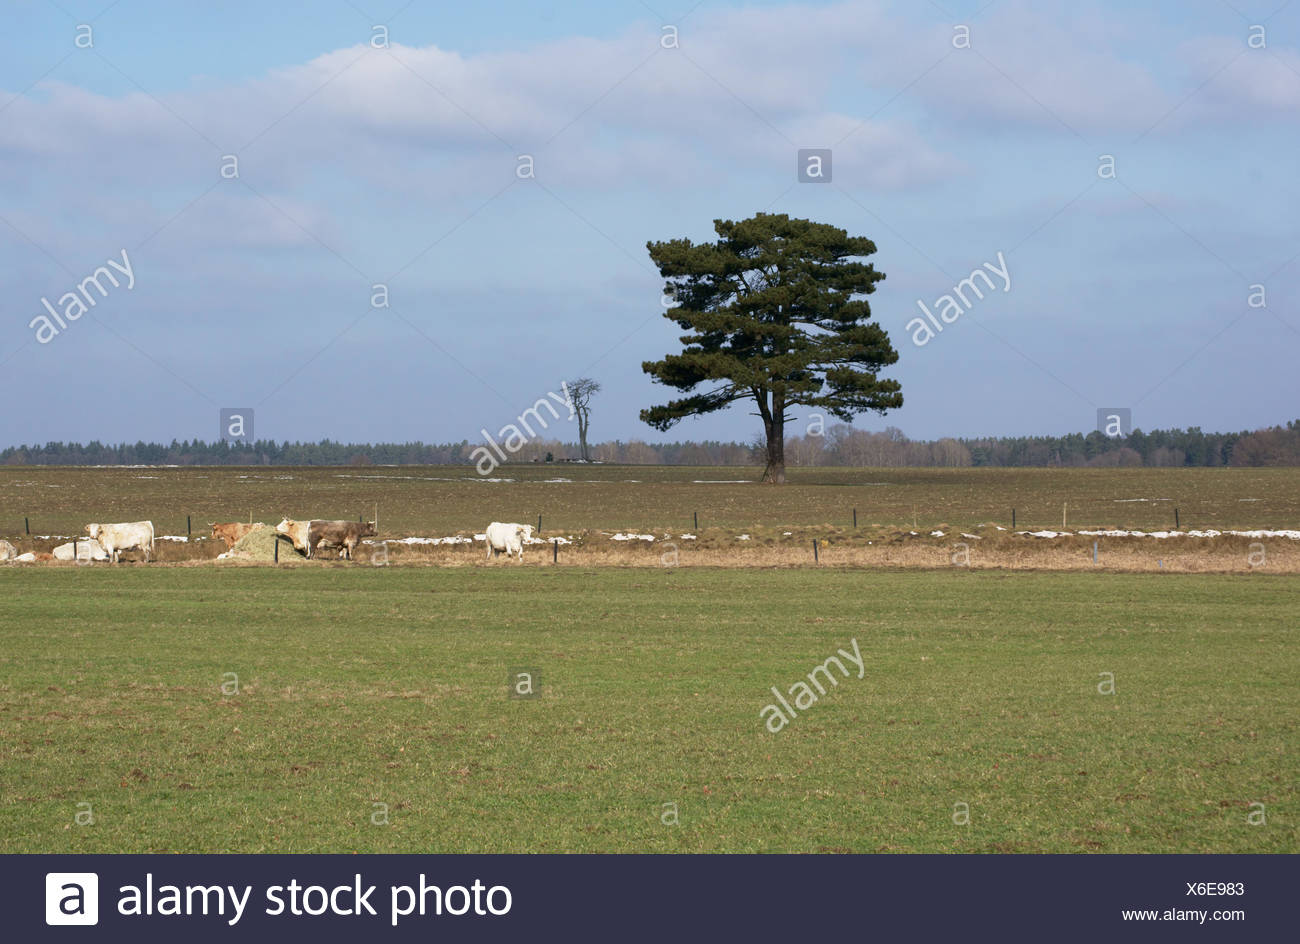 Pine and cows - Stock Image